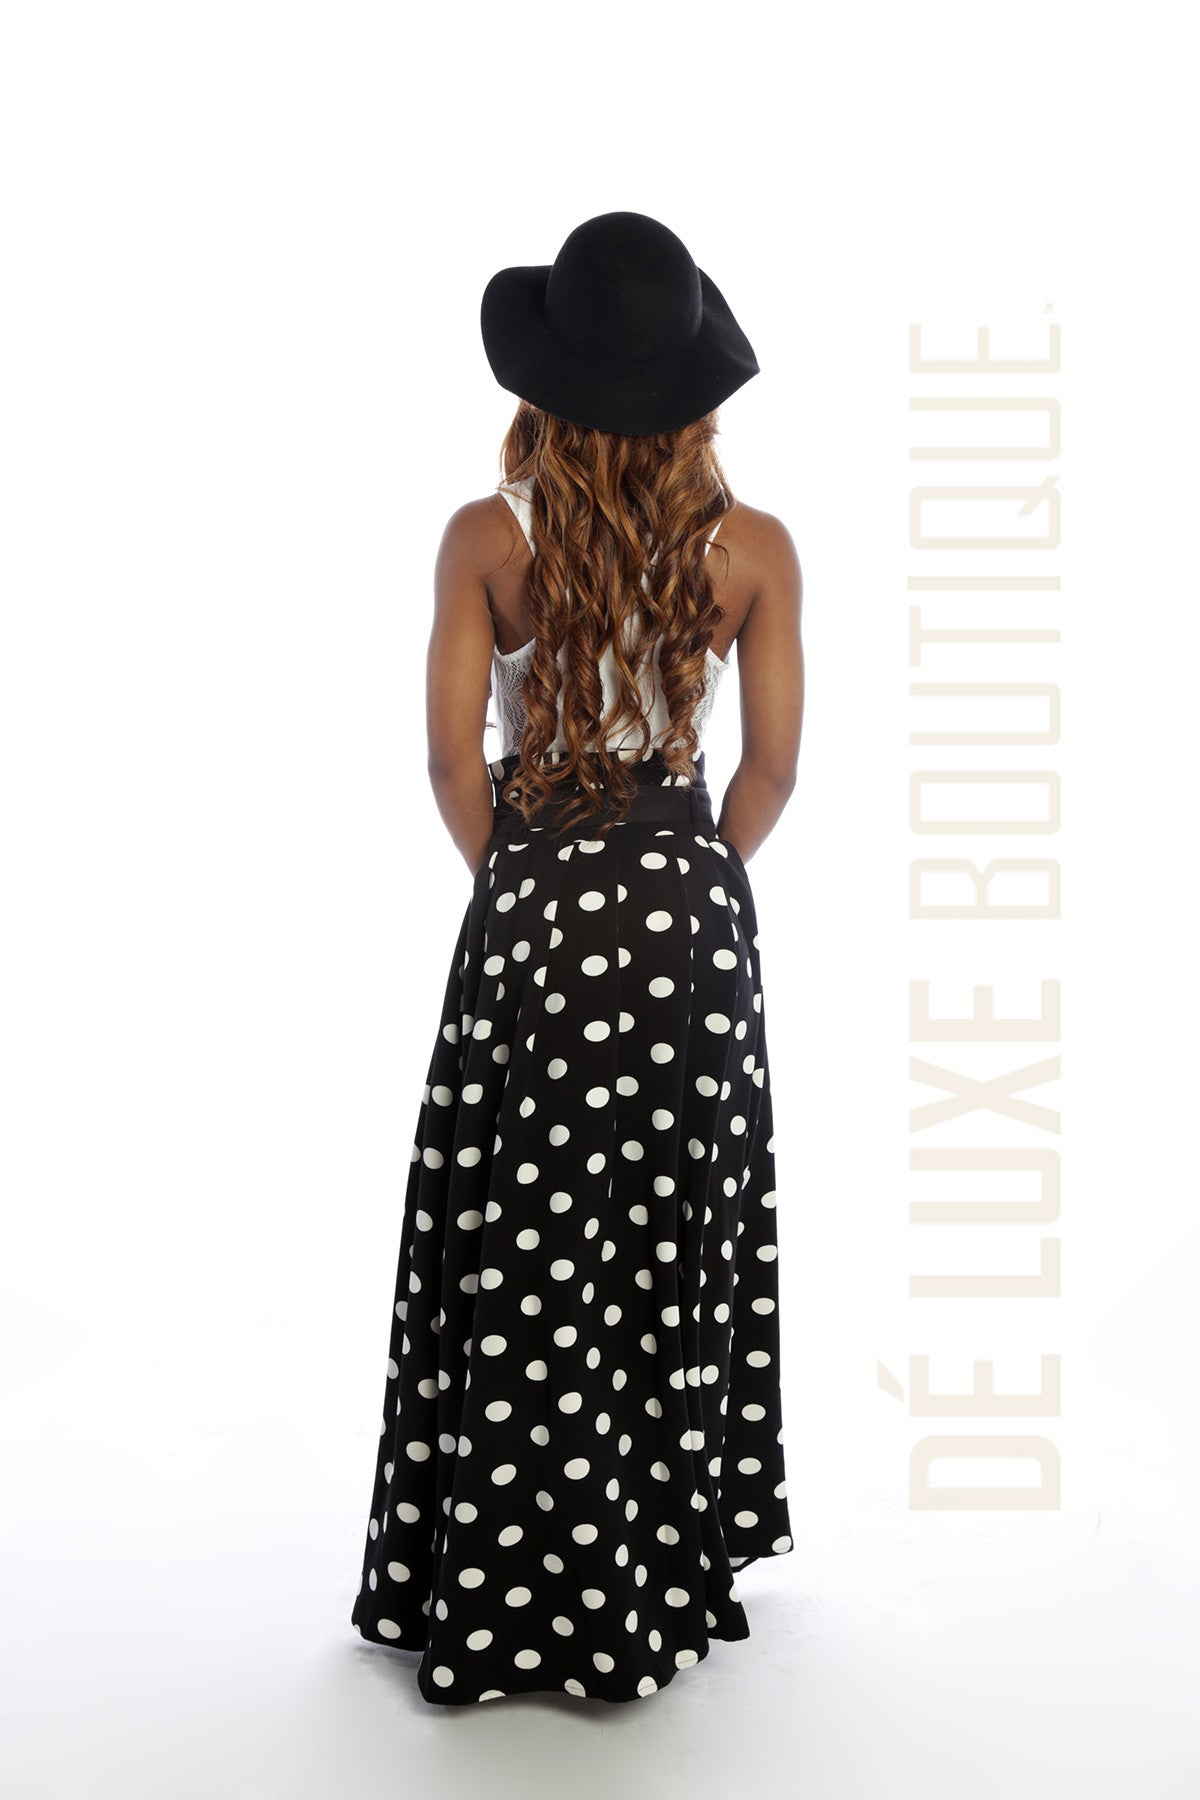 Charming Polka Dot Maxi Skirt - The Dé Luxe Boutique